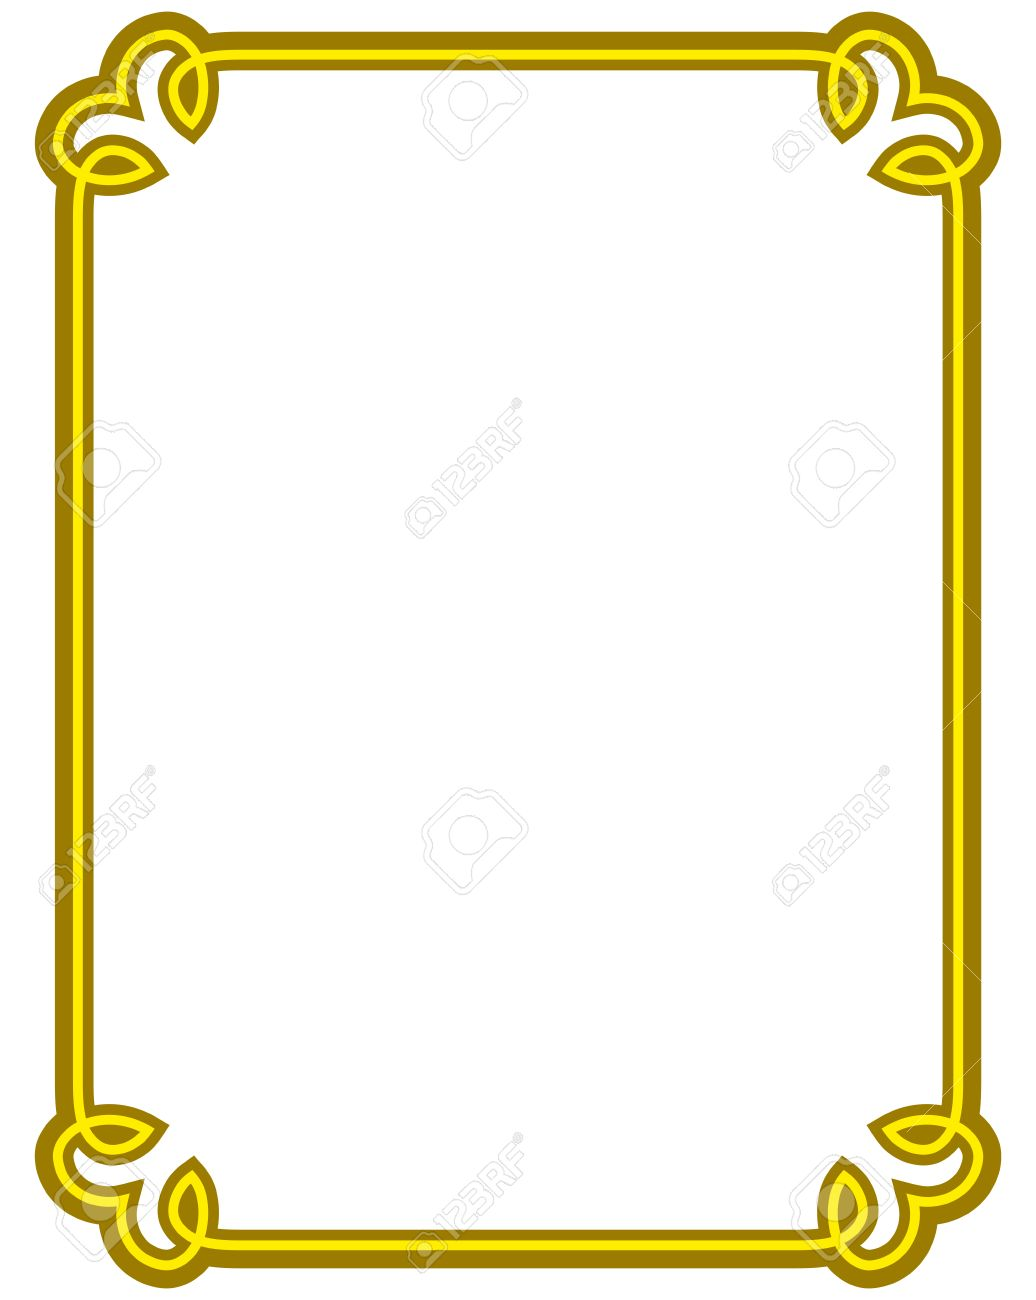 Simple gold border clipart clip royalty free download Gold Border Clipart | Free download best Gold Border Clipart on ... clip royalty free download